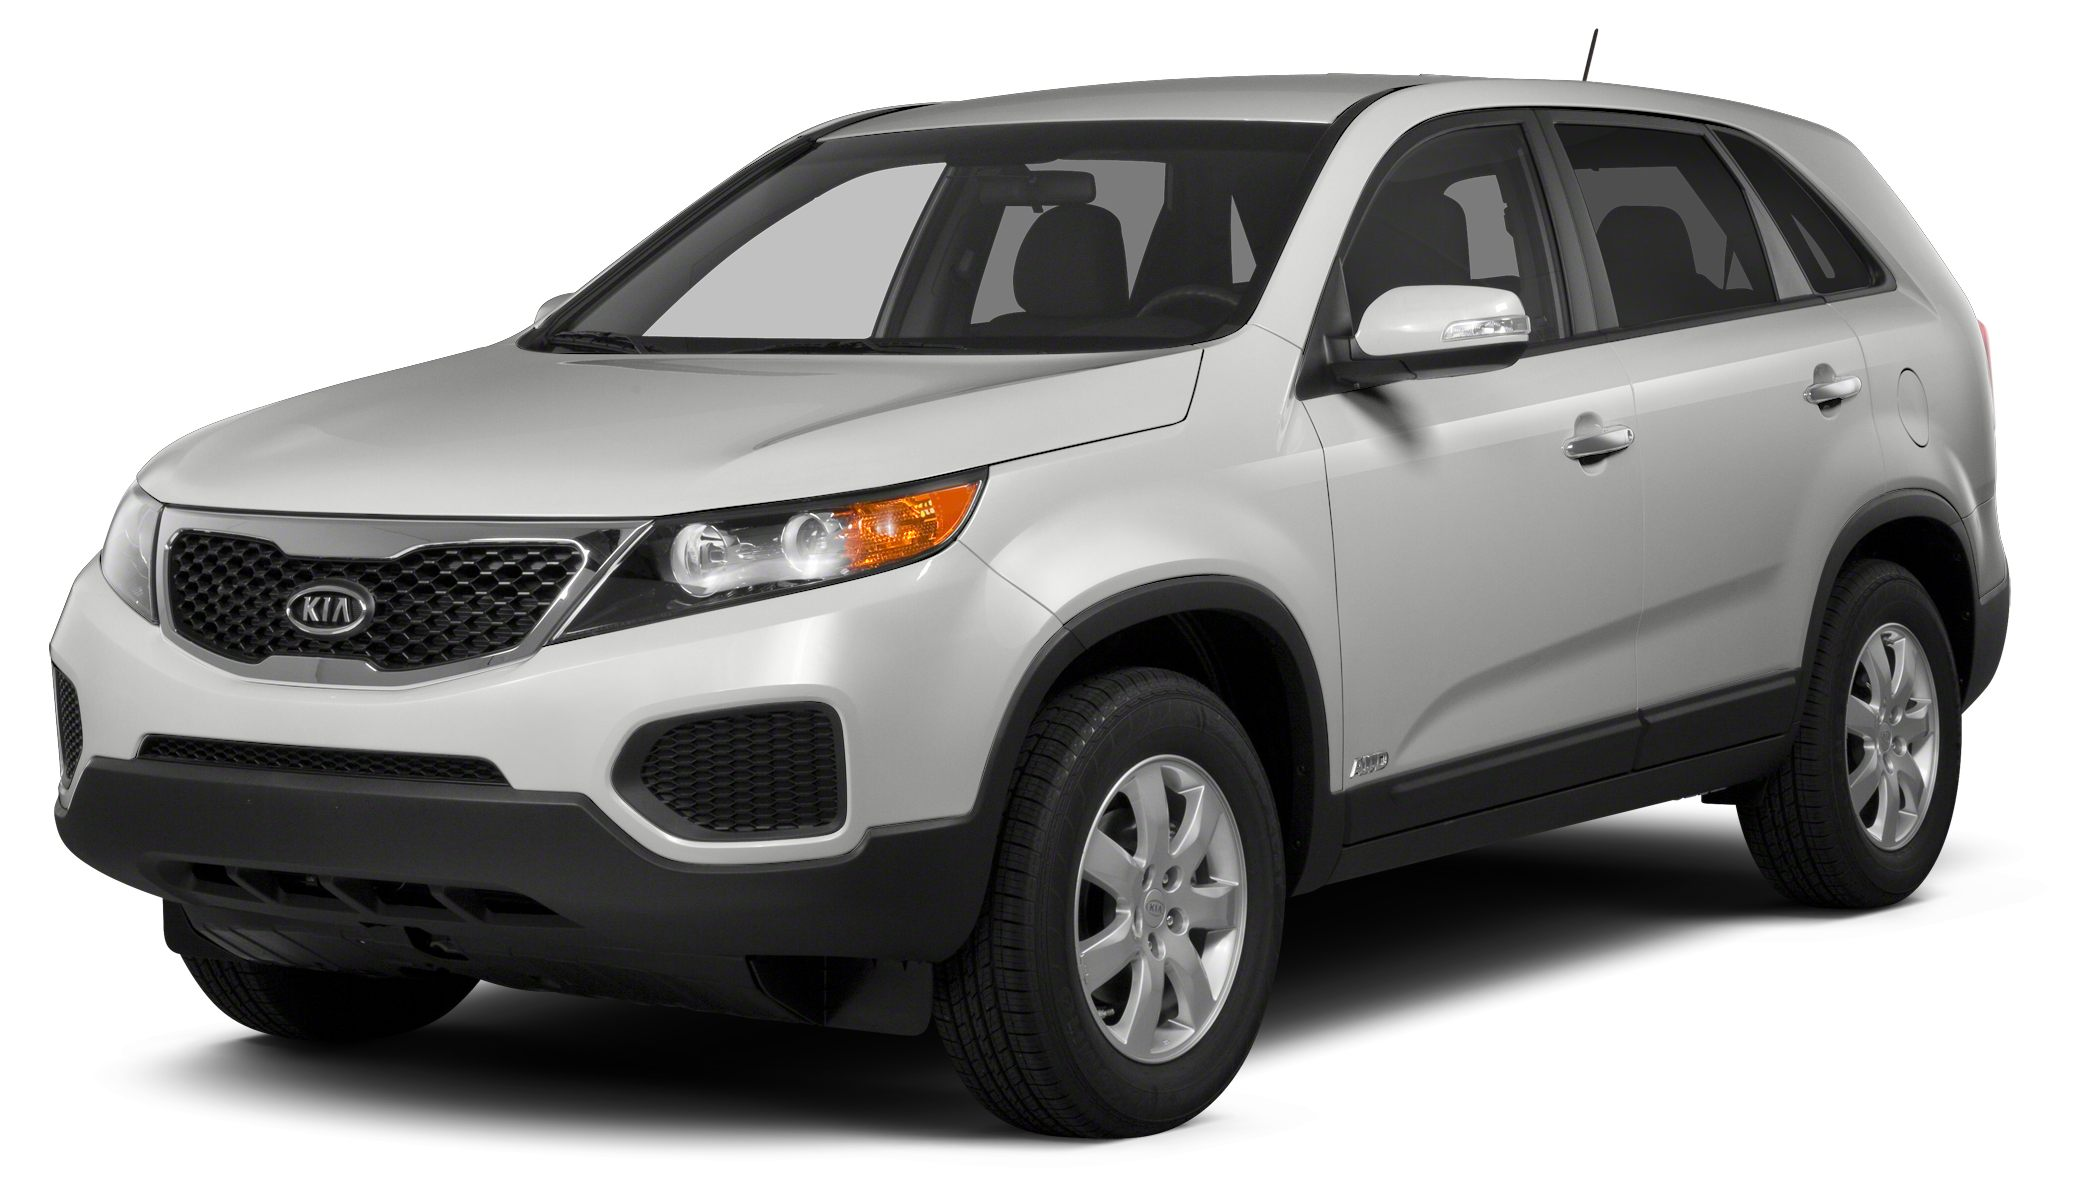 2013 Kia Sorento LX REDUCED FROM 19400 PRICED TO MOVE 900 below Kelley Blue Book FUEL EFFIC